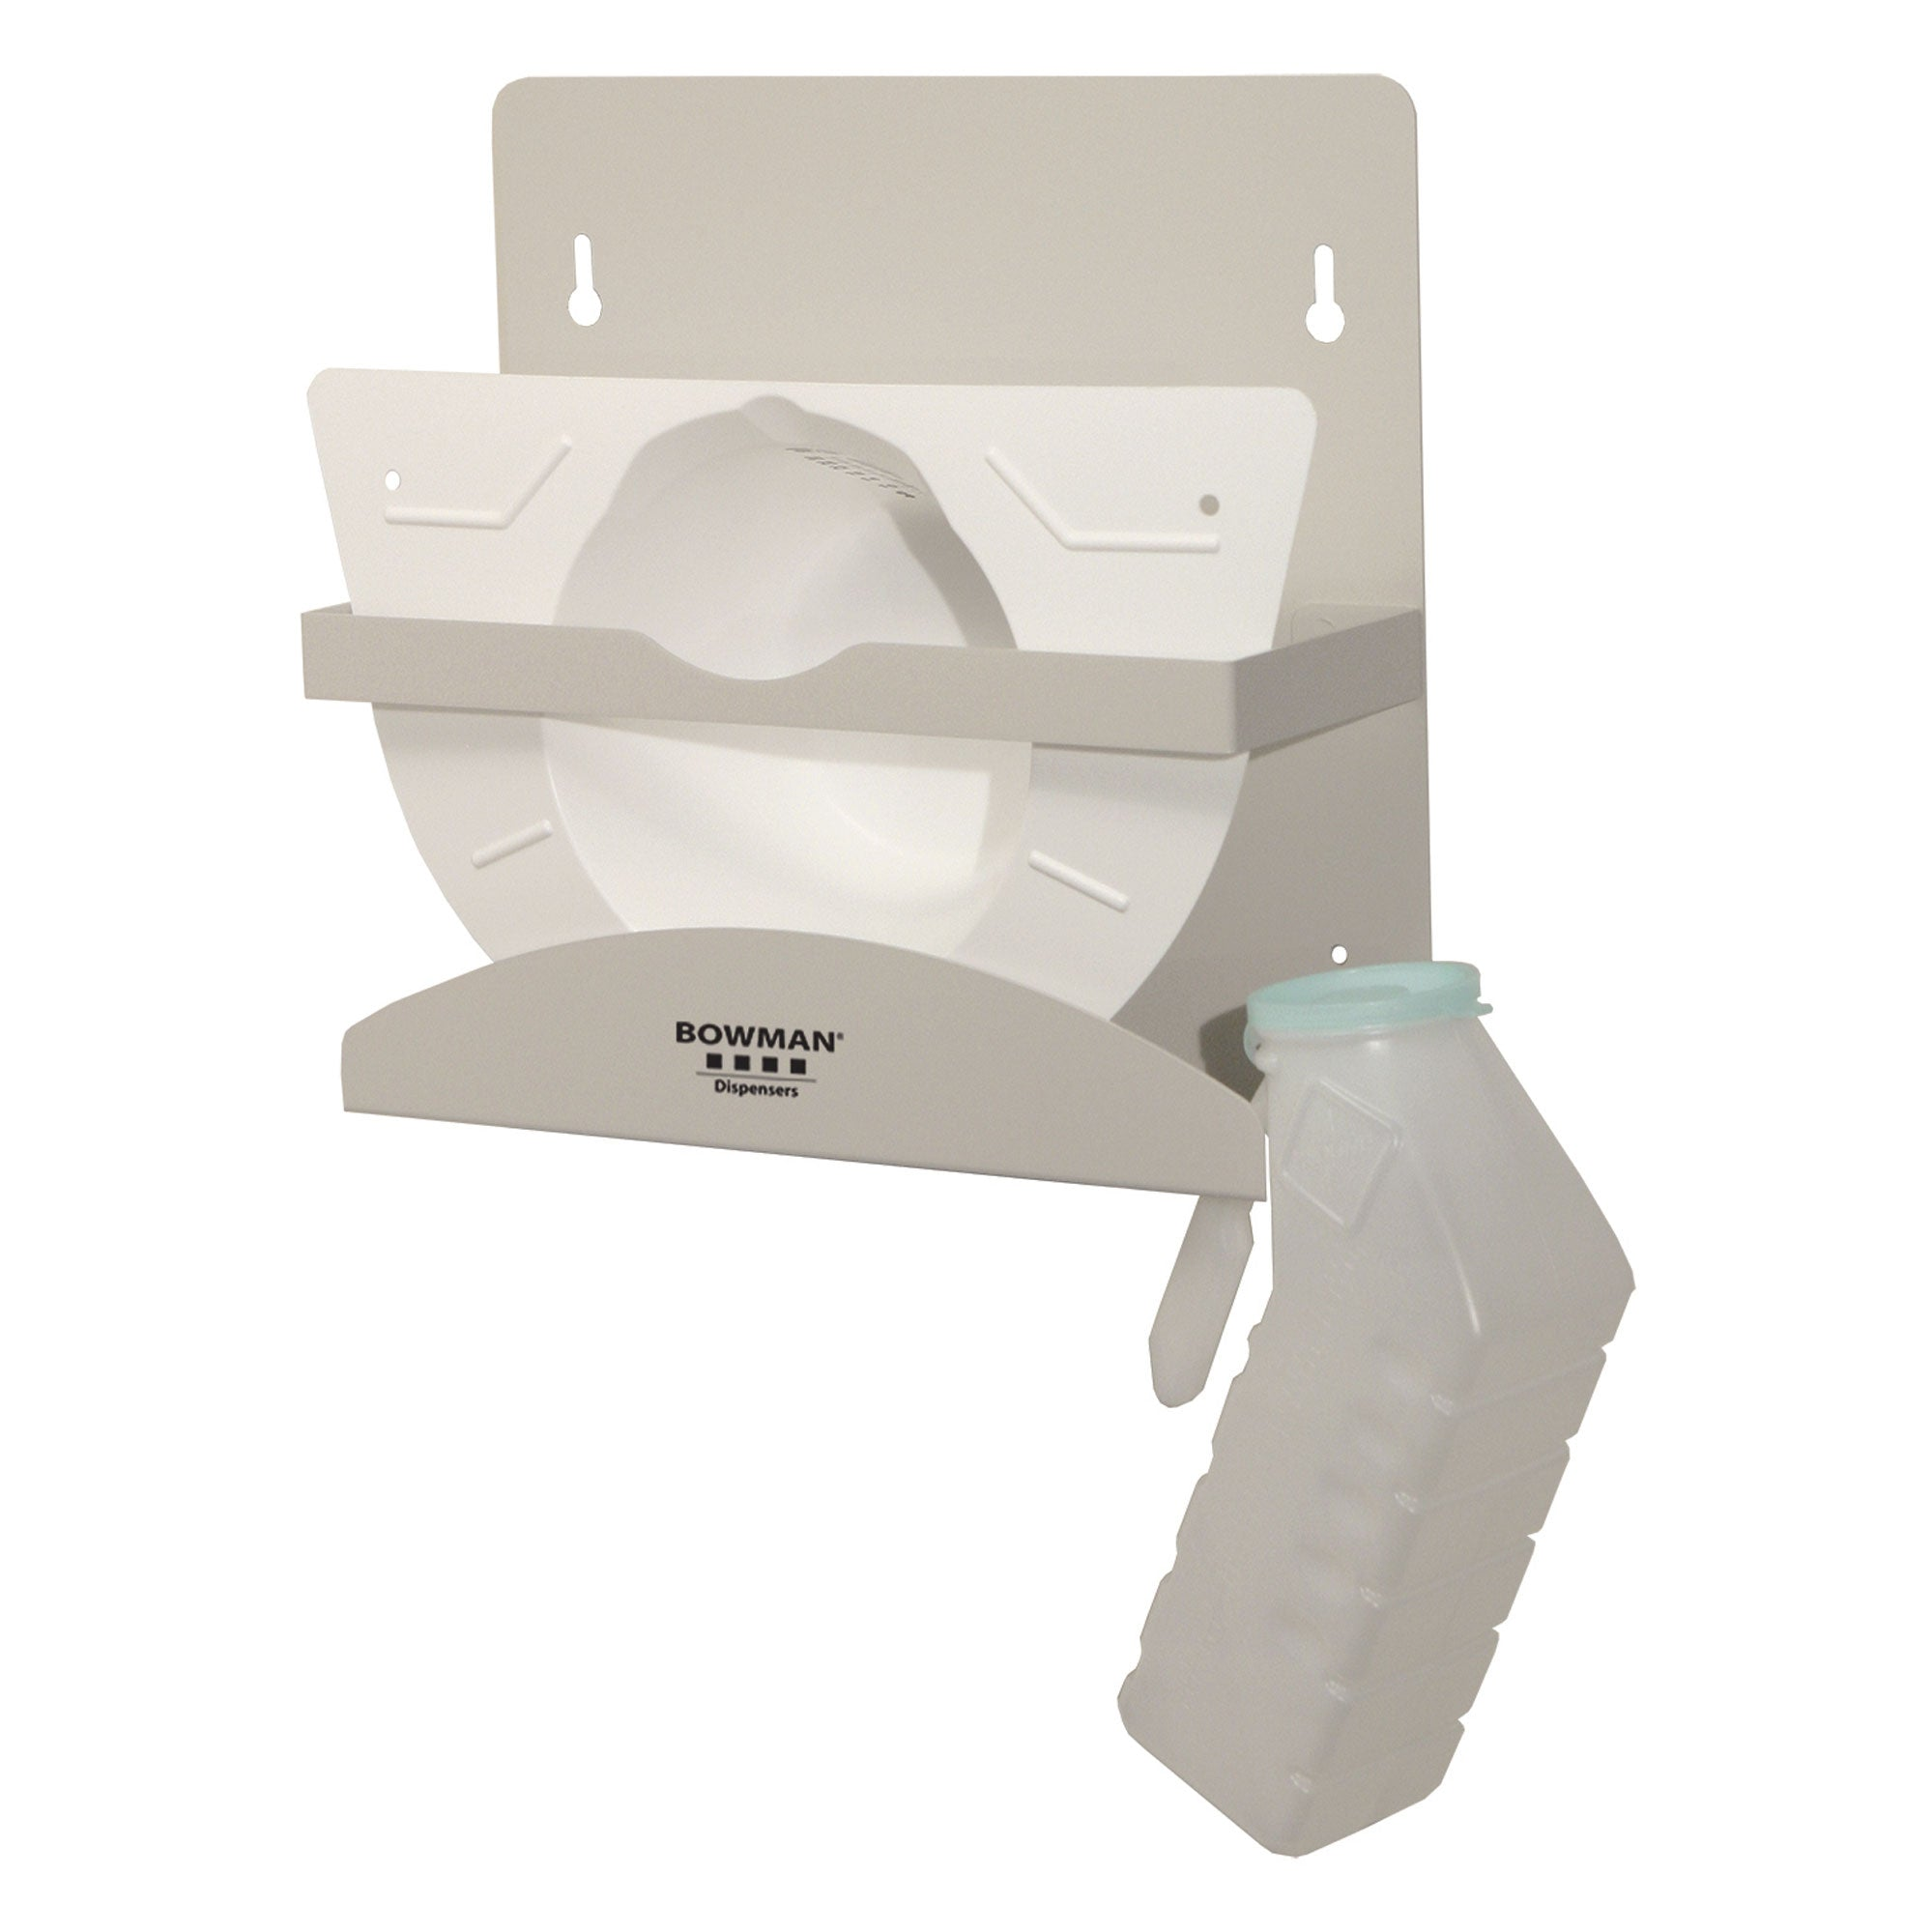 Bowman ABS Bedpan/Urinal Dispenser